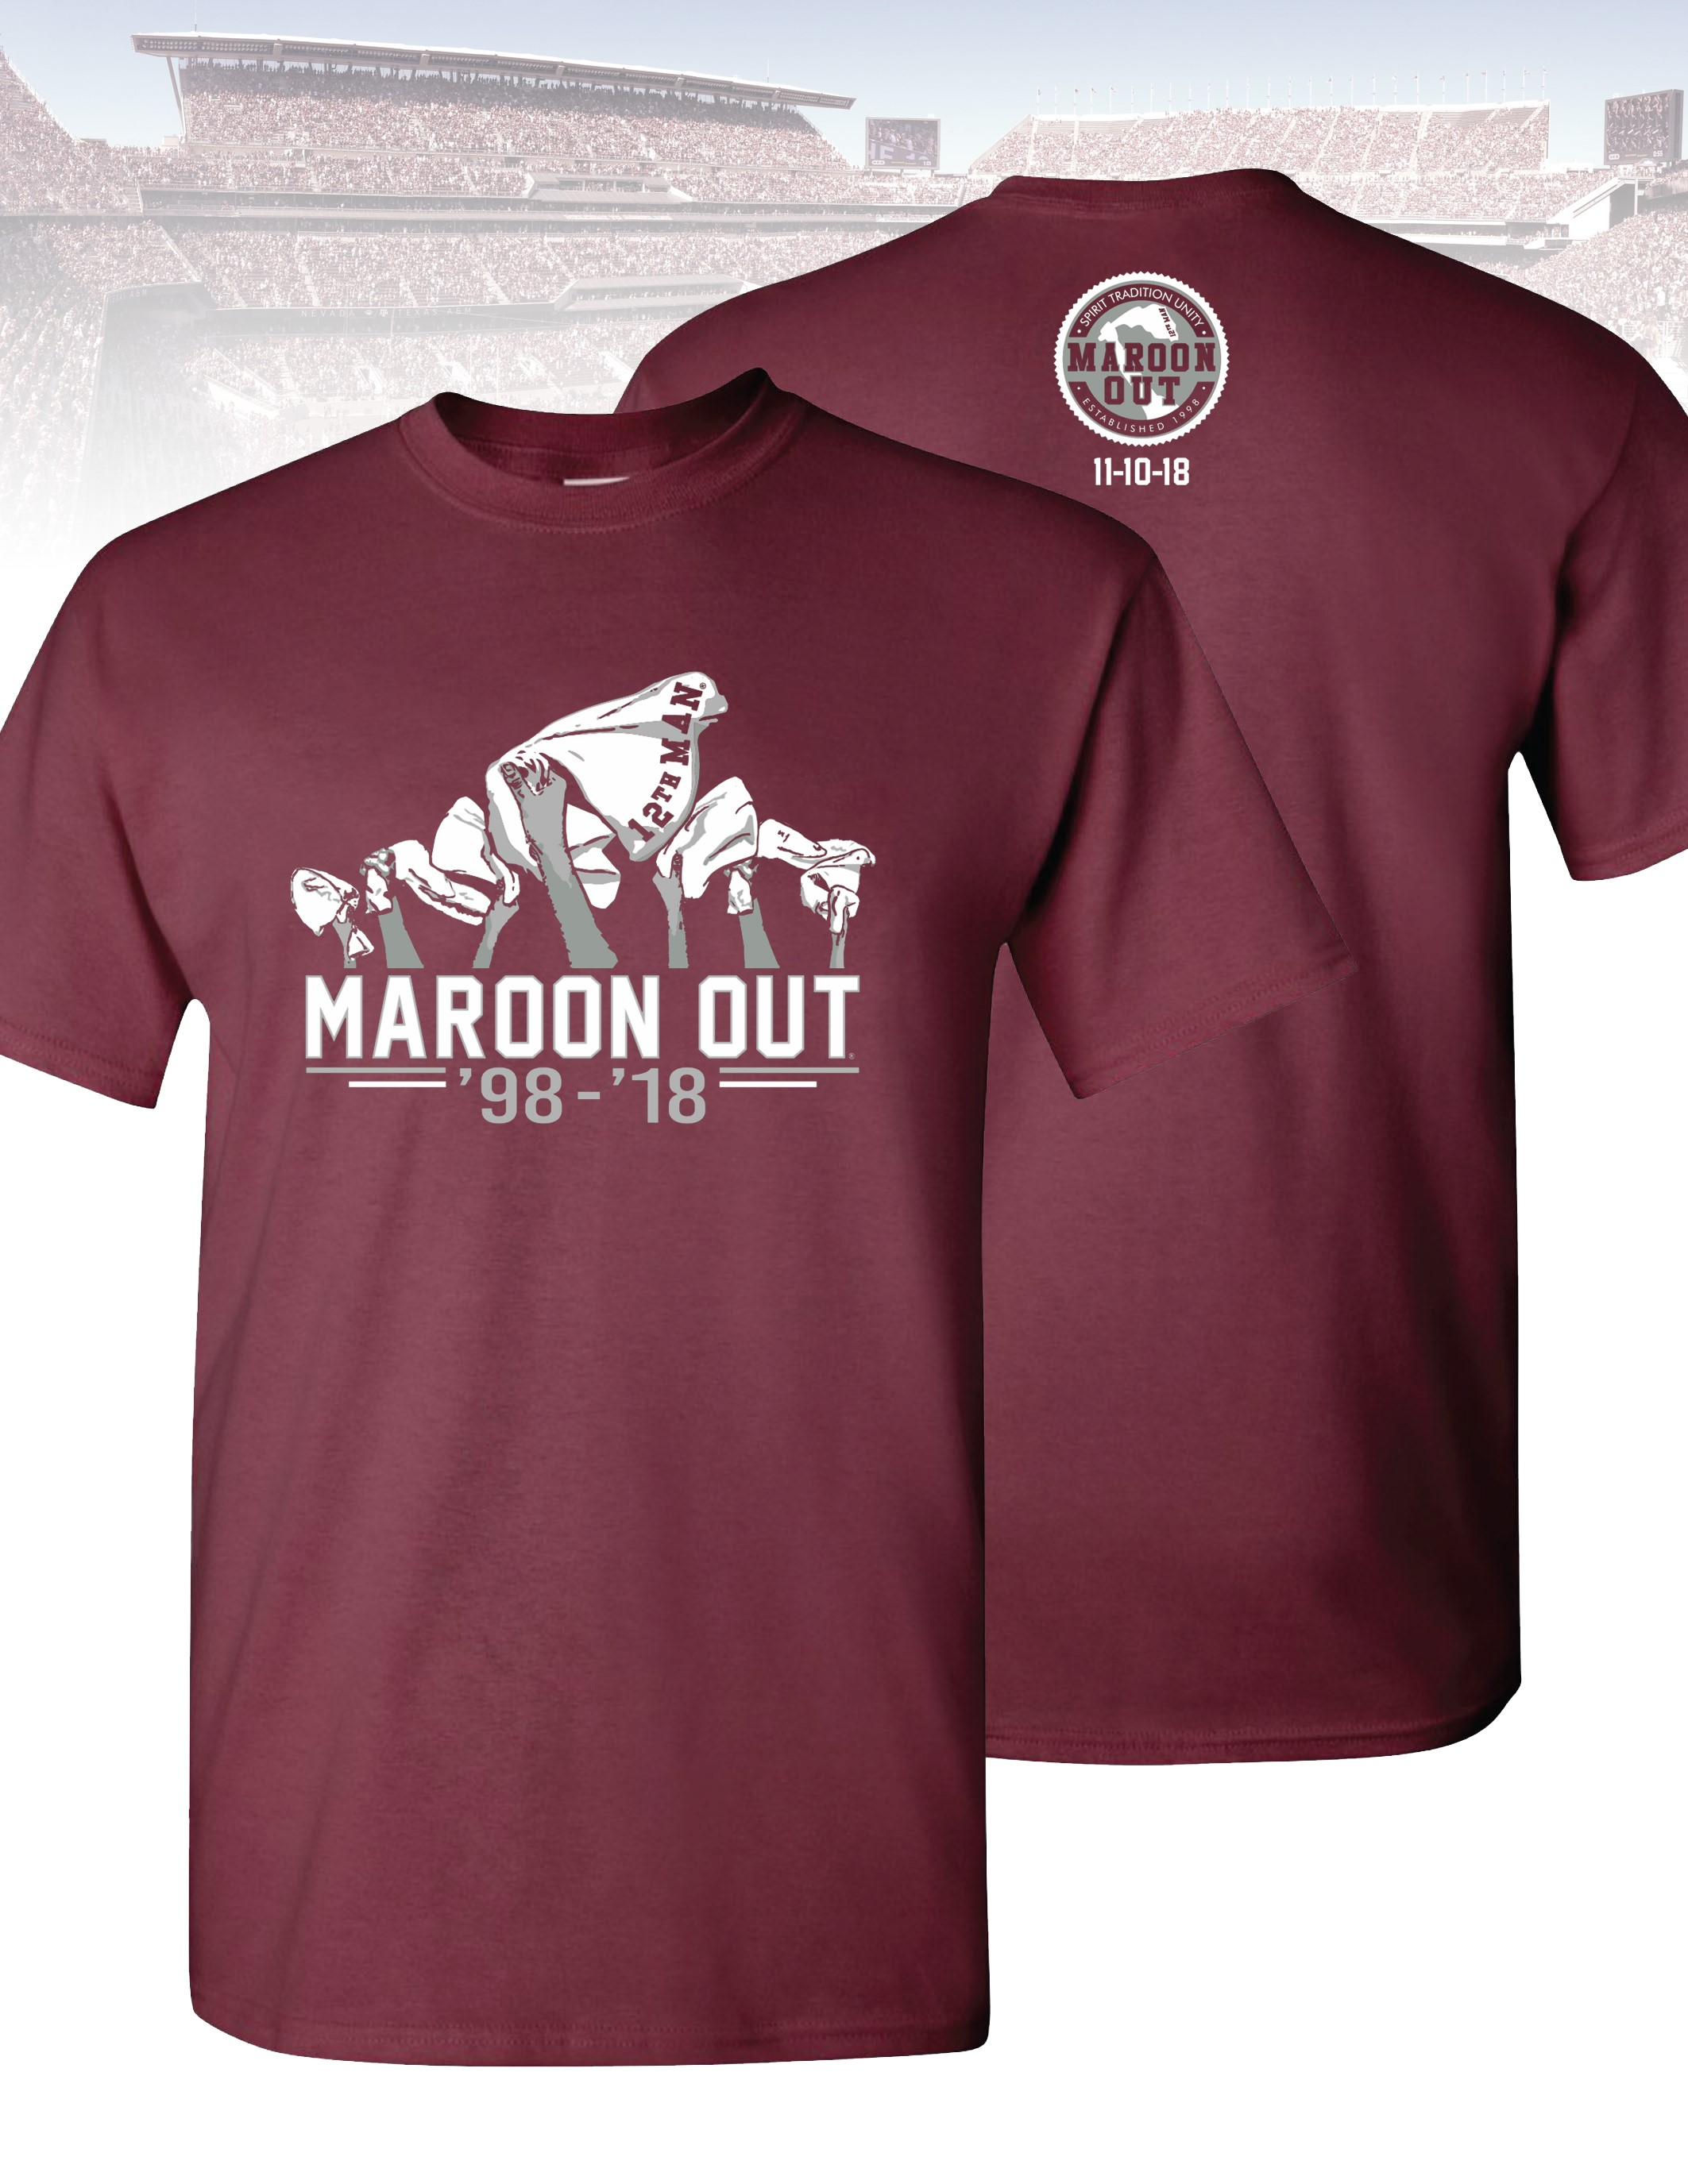 2018 Maroon Out Shirt Design Features 12th Man Towels